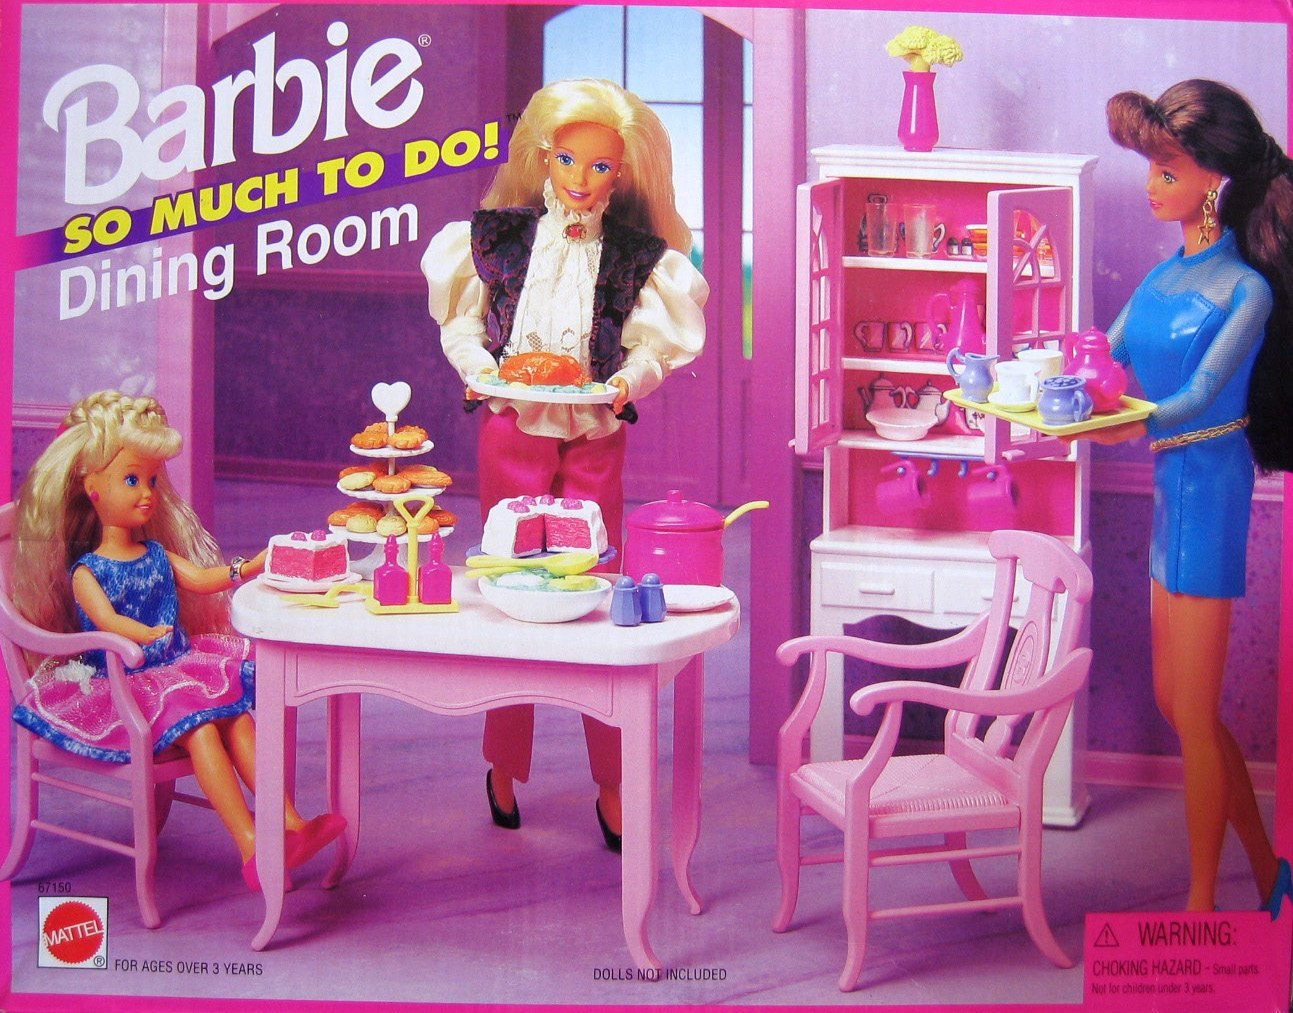 Barbie So Much To Do Dining Room Playset (1995 Arcotoys, Mattel)